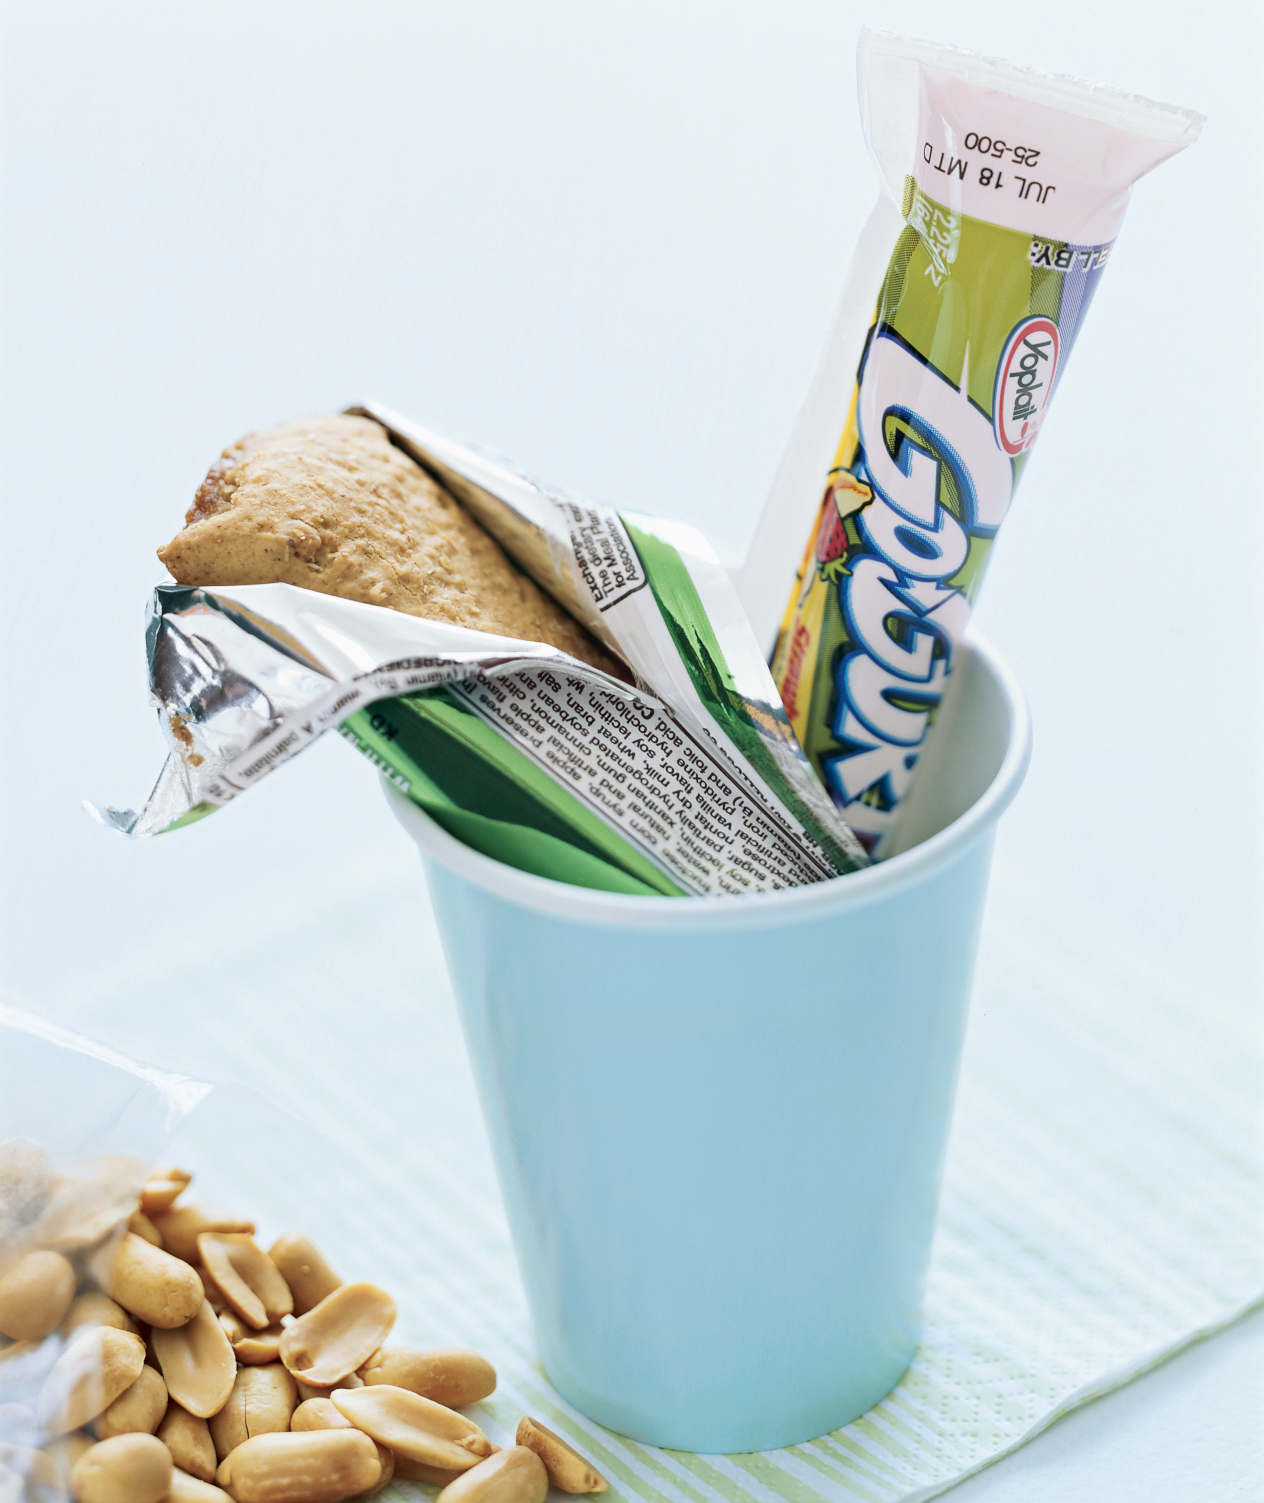 Energy bar in a cup